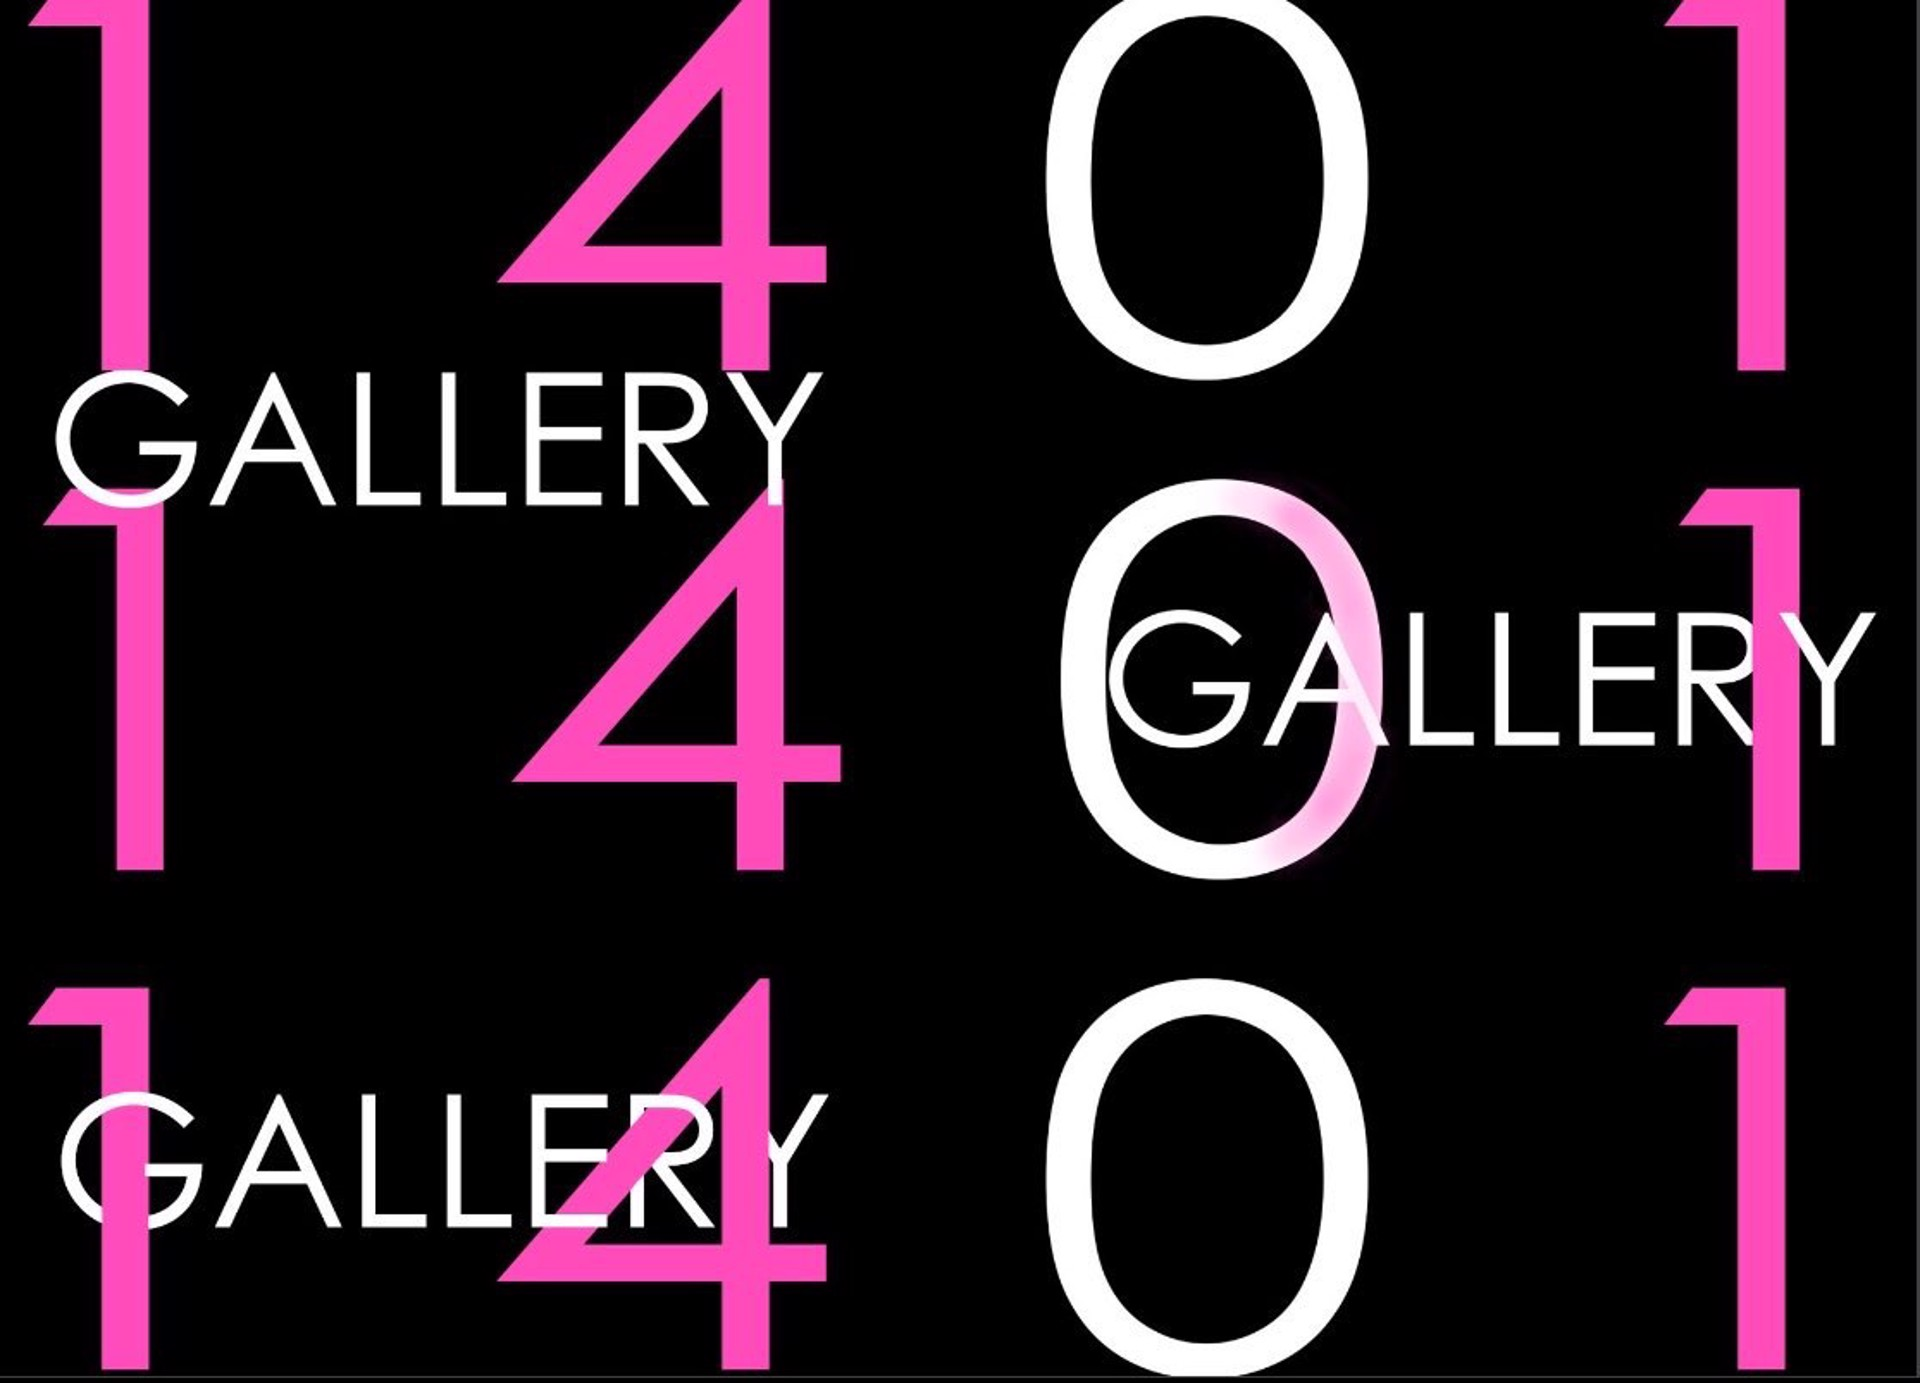 GALLERY 1401 $500 GIFT CARD